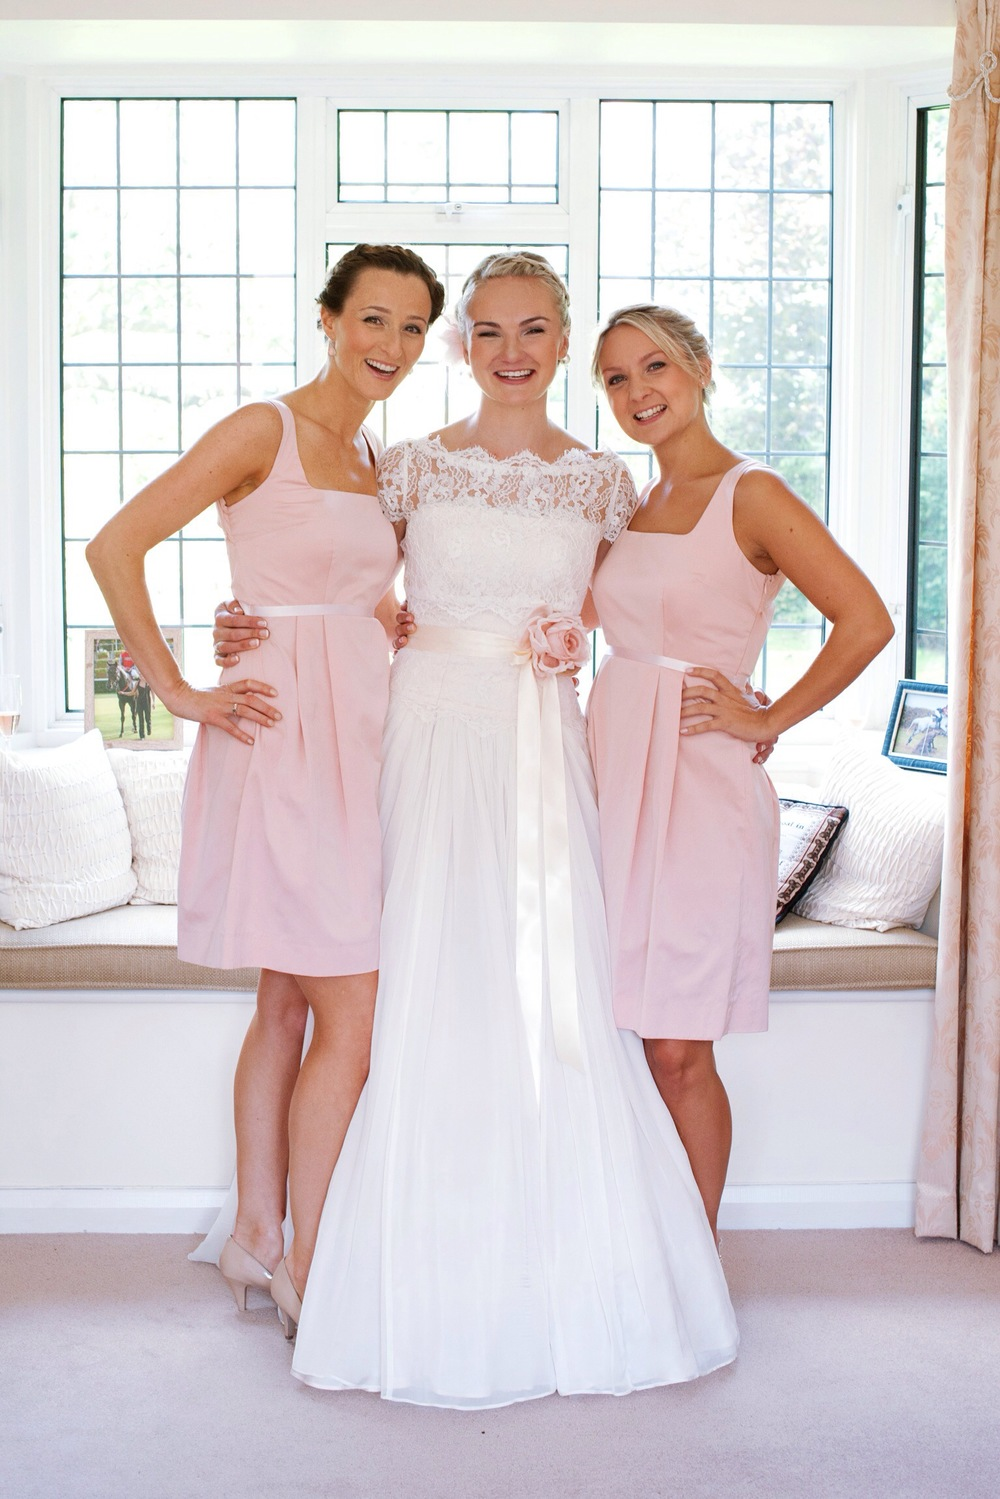 The very happy bride and her gorgeous bridesmaids, prep finally over, tears gone all ready for their day.